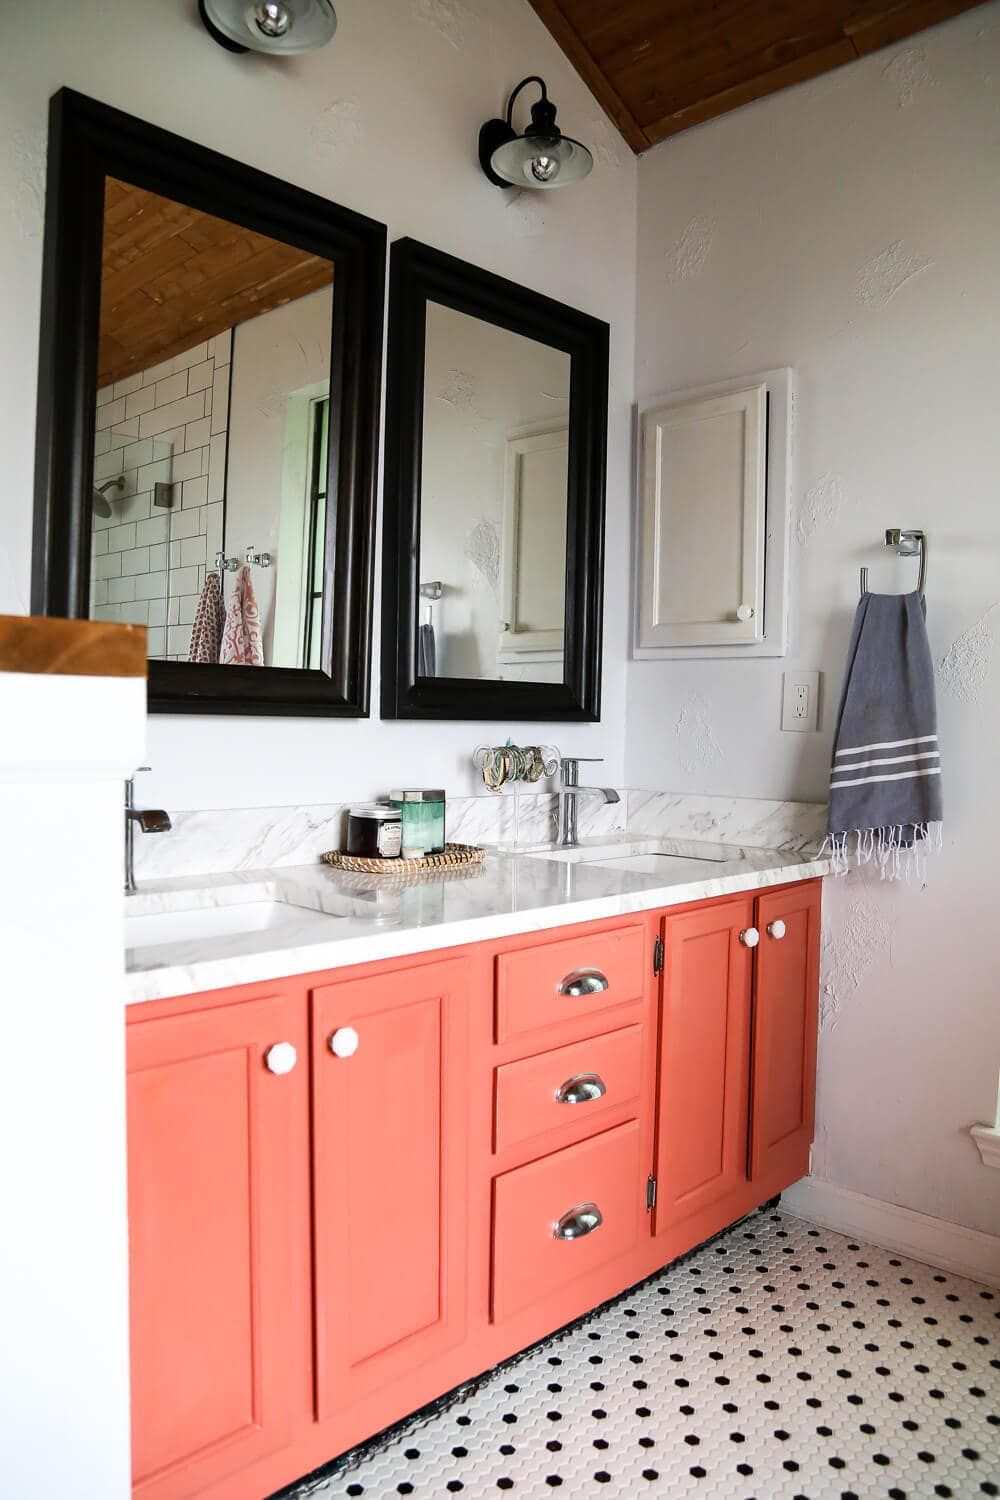 Beautiful Diy Bathroom Remodel (Ideas For A Budget-Friendly, Beautiful Remodel) in Lovely Bathroom Remodel Diy